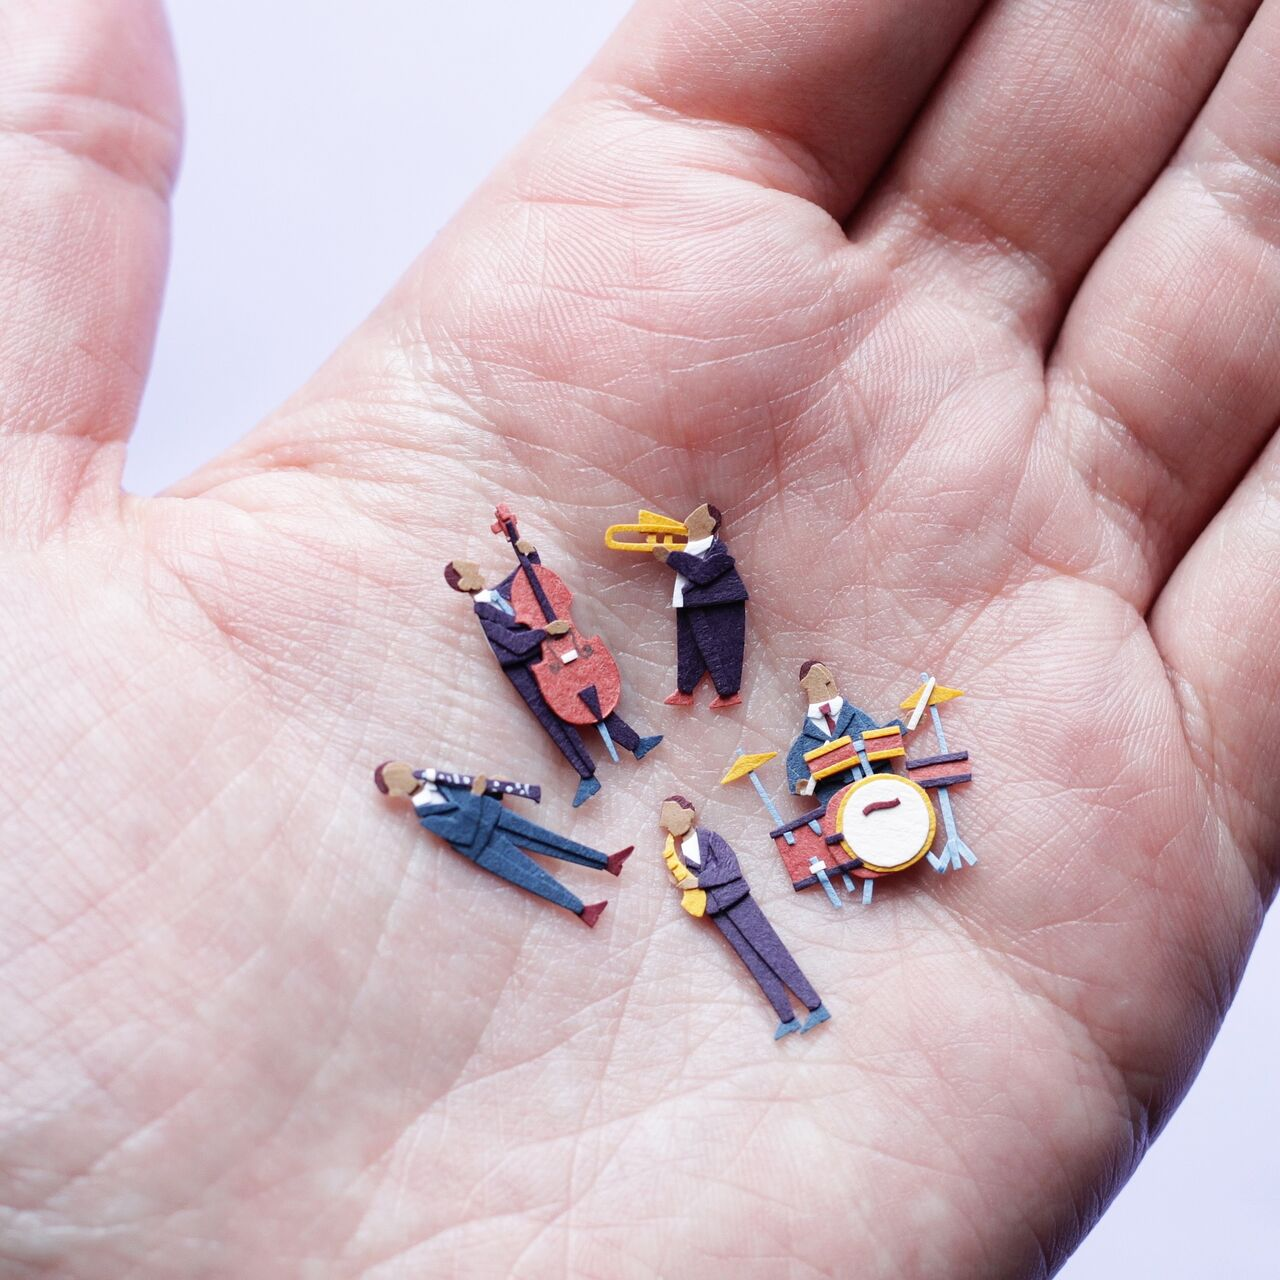 Photo of a hand holding tiny band members with instruments made out of intricate paper.